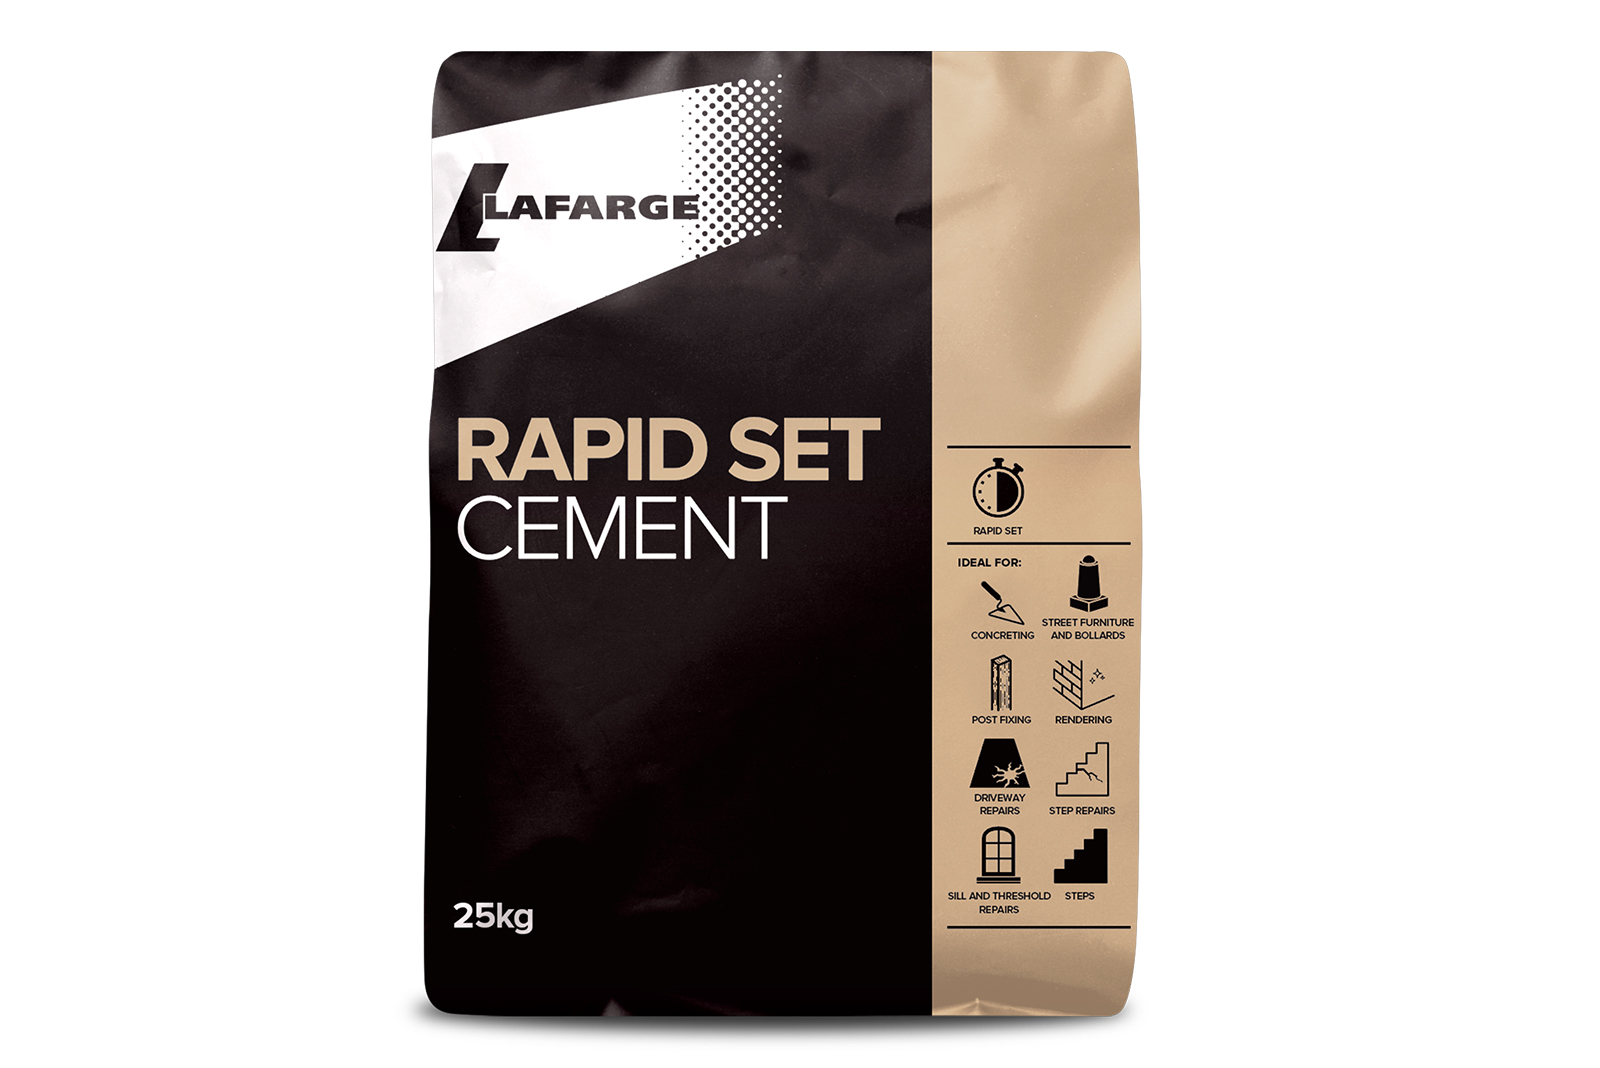 Packed cement from Lafarge